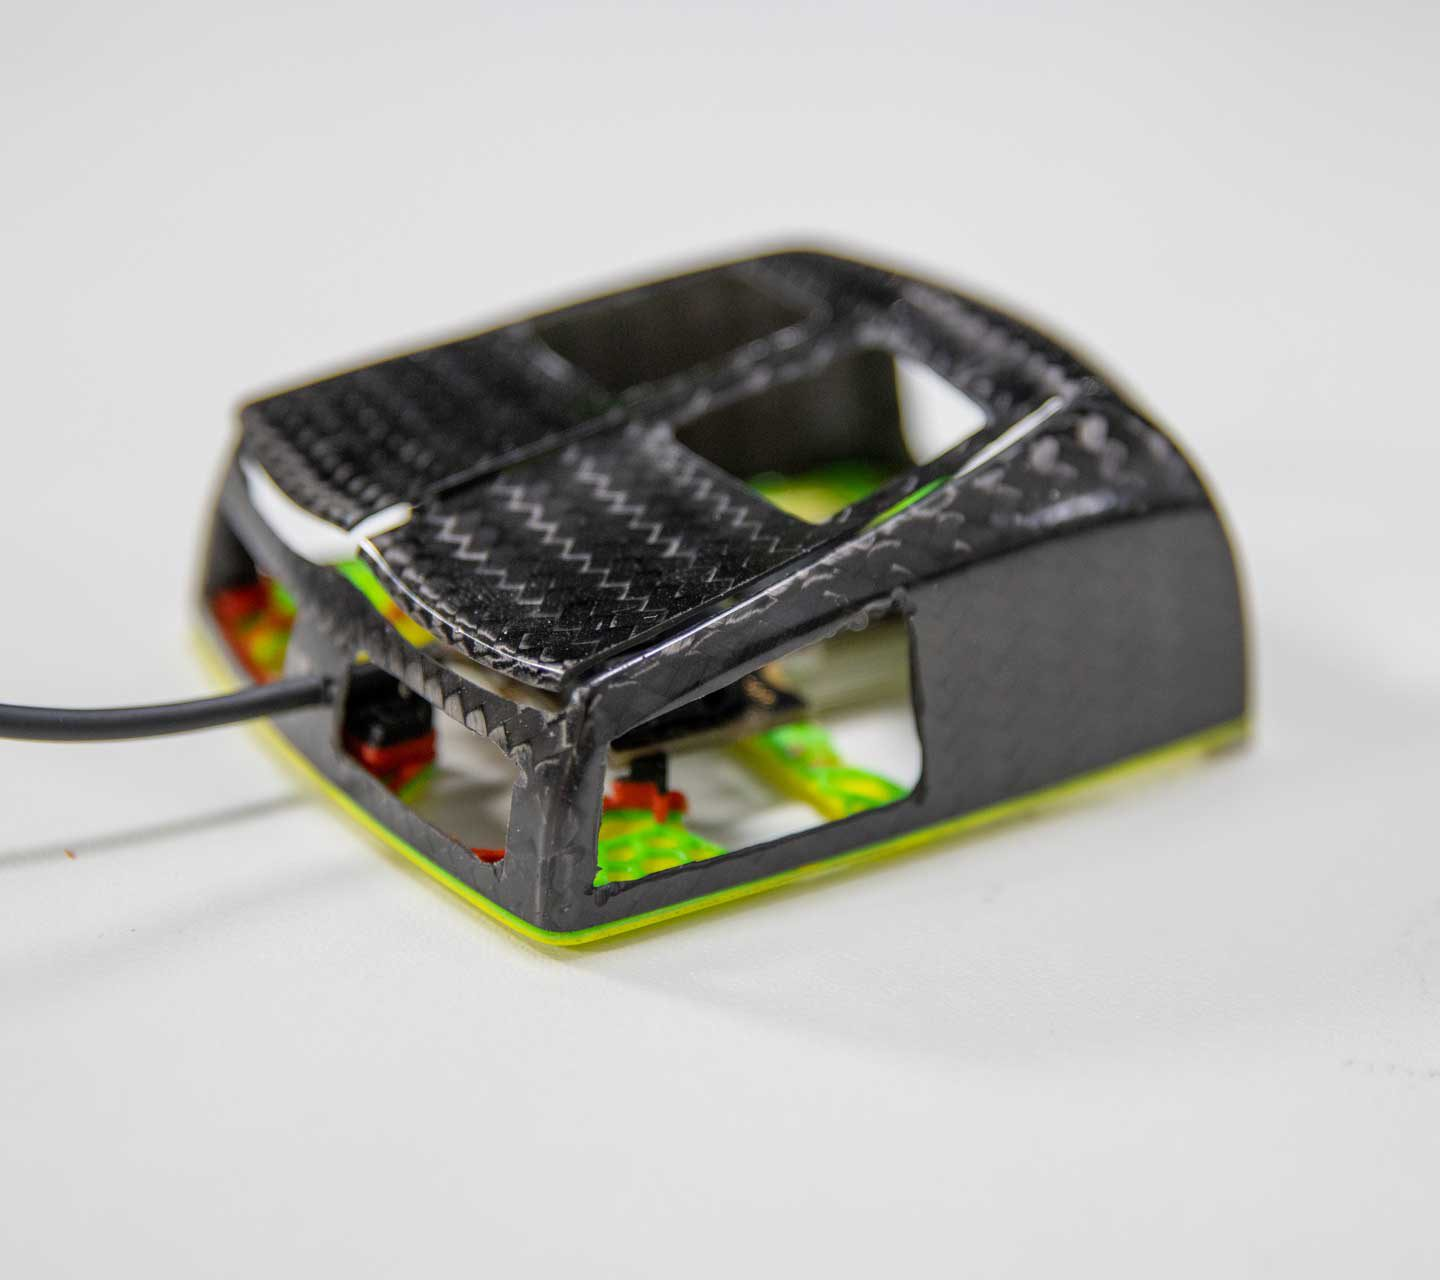 Zaunkoenig M1K 23g Gaming Mouse Weight Reduction Mod